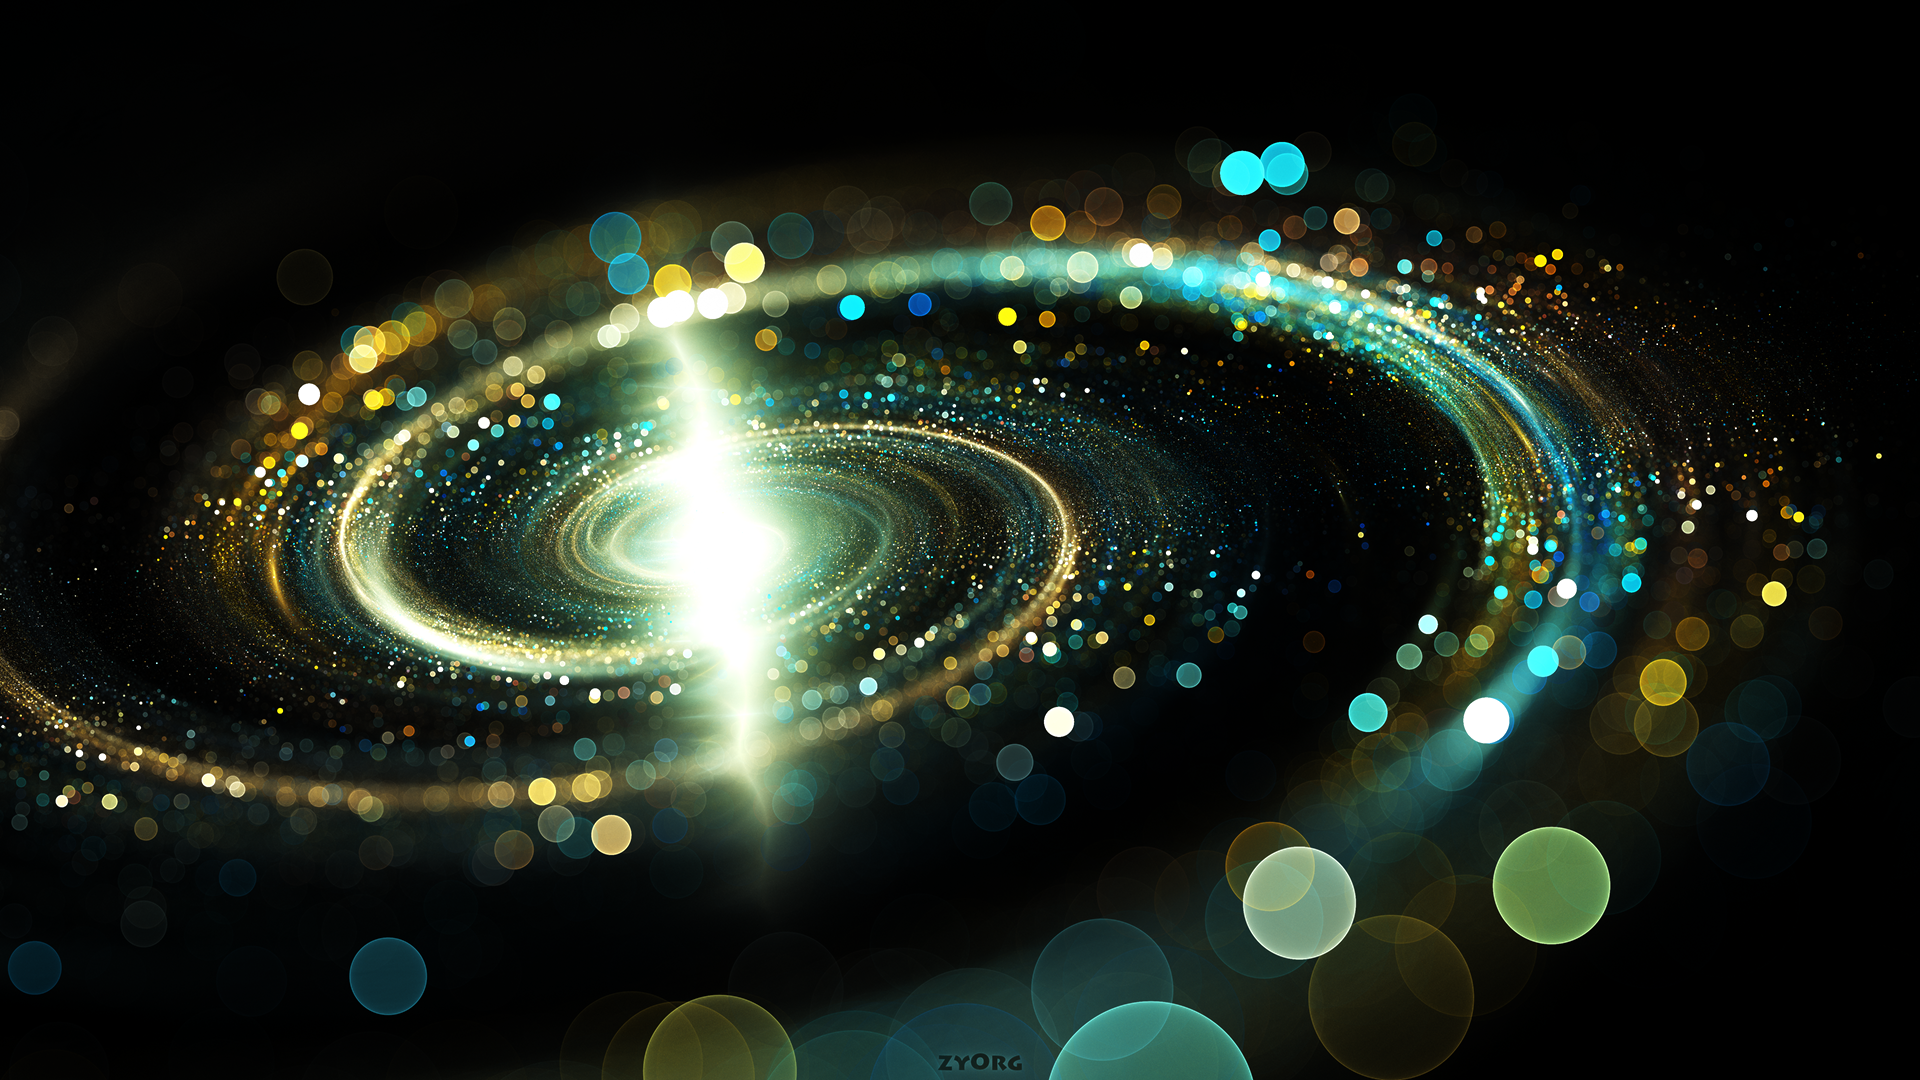 Interesting Spiral HDQ Images Collection: 27139724, 1920x1080